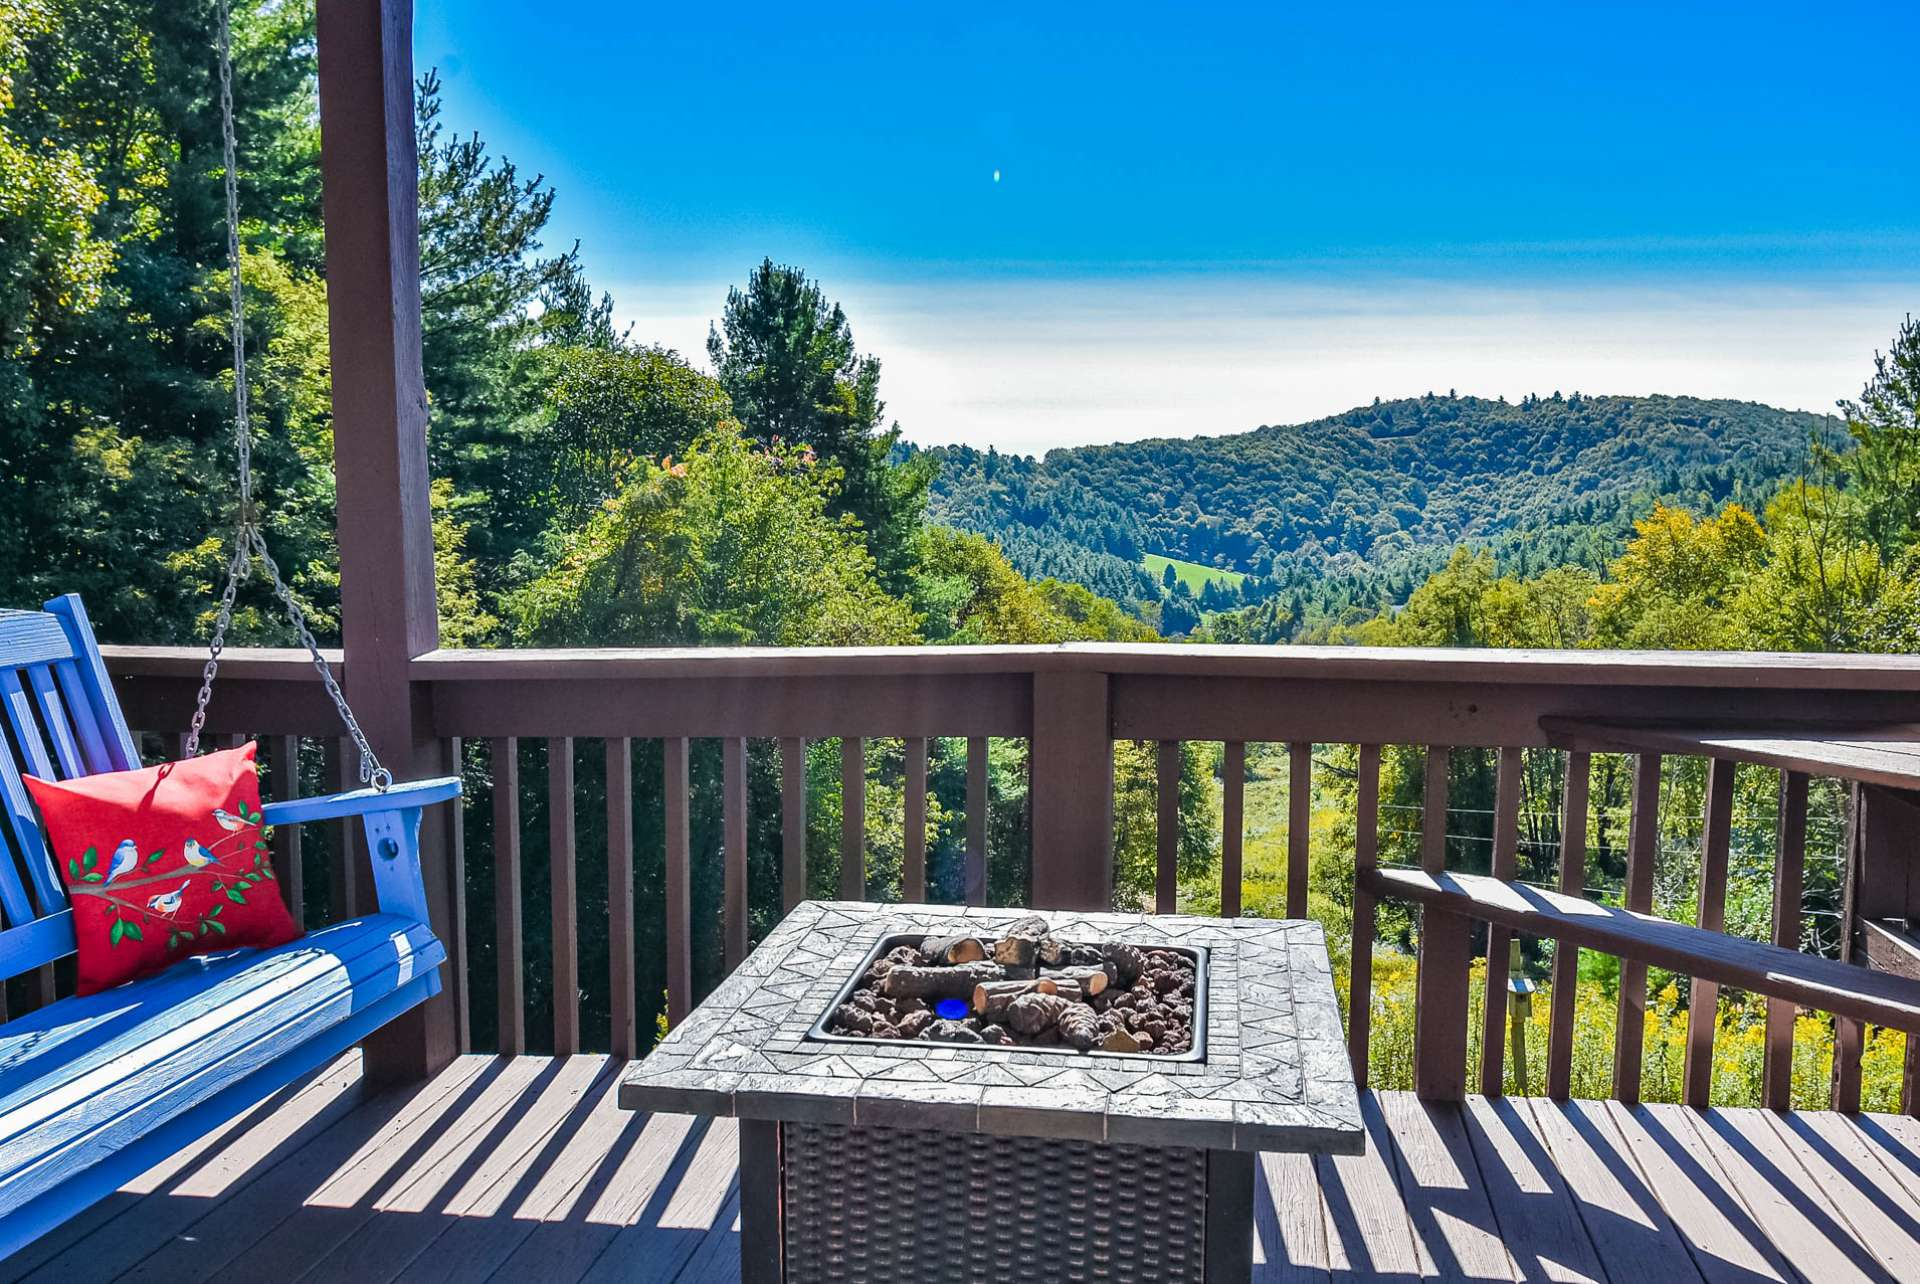 What a great place to enjoy the mountain views while sharing memories and stories around the firepit.